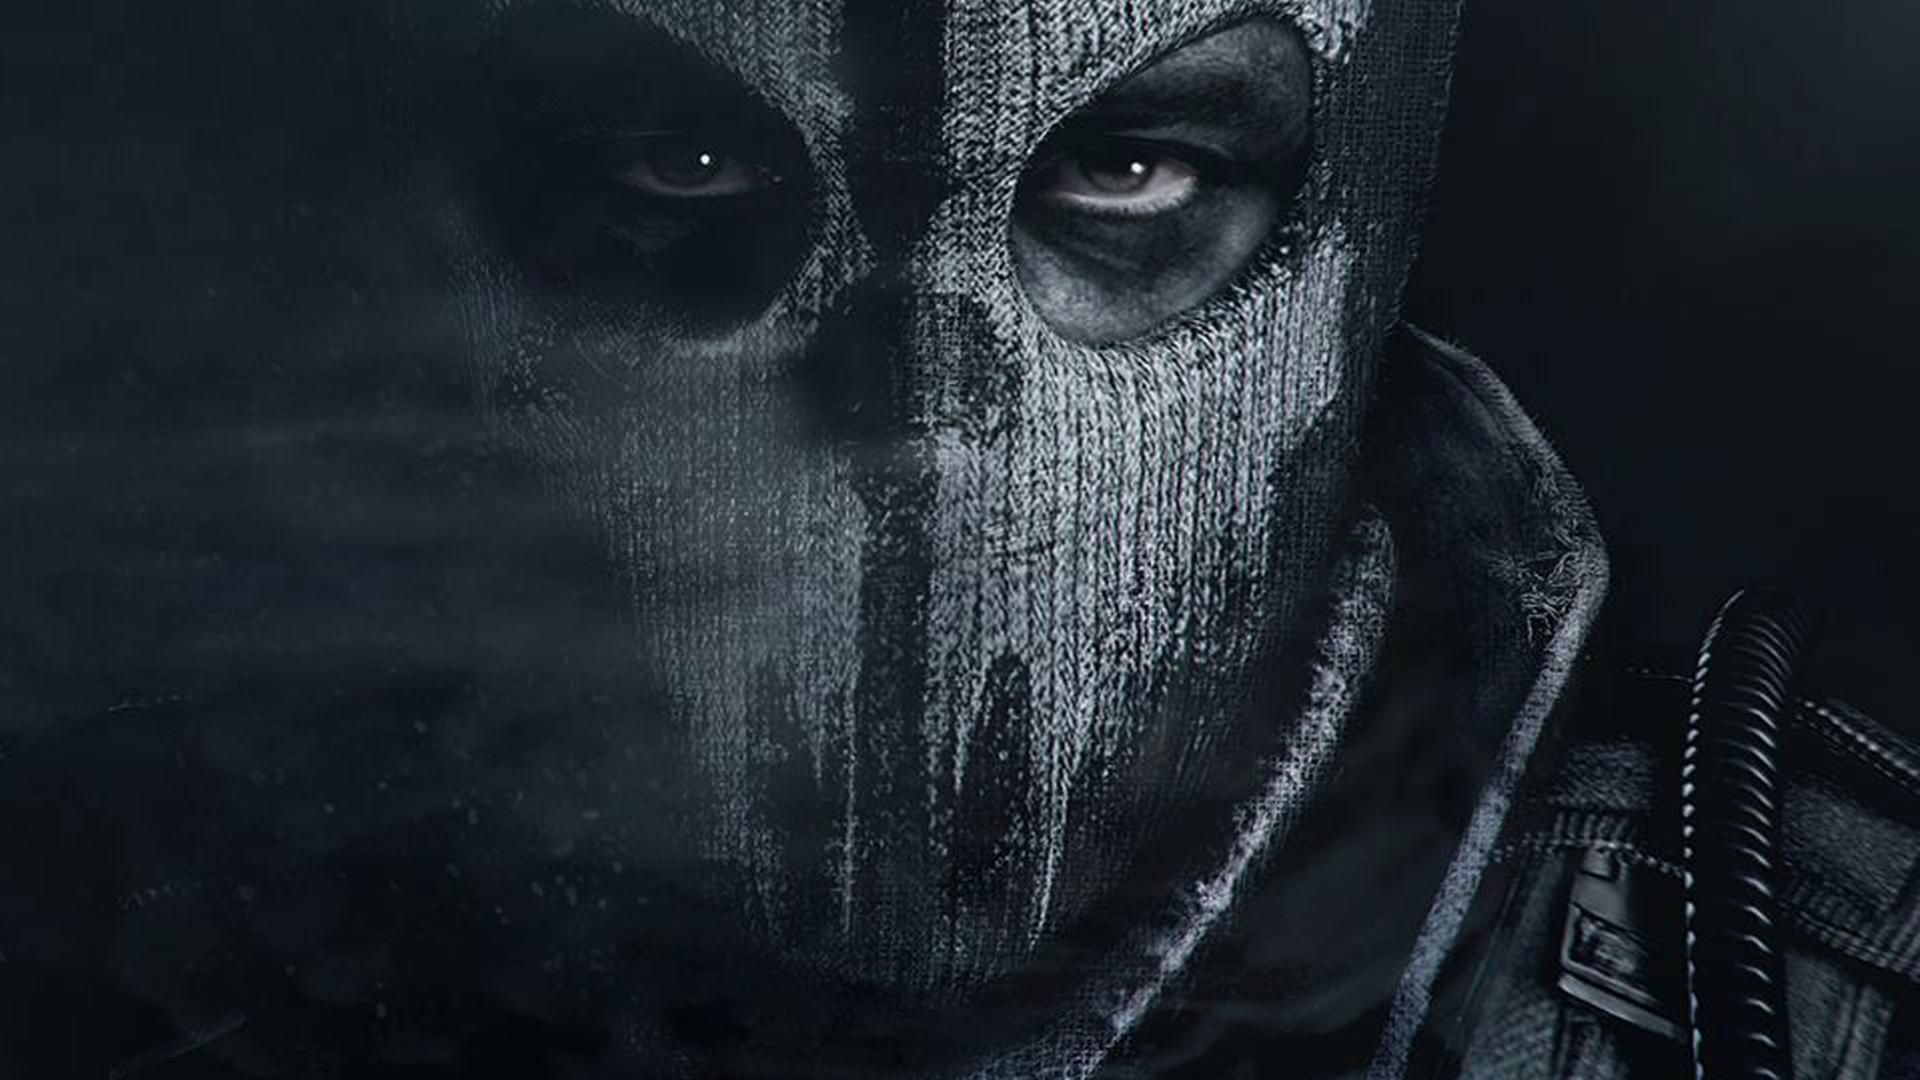 Call Of Duty Ghost Wallpapers 1080p For Desktop Background Wallpaper Hd Resolution 1920x 88 Kb